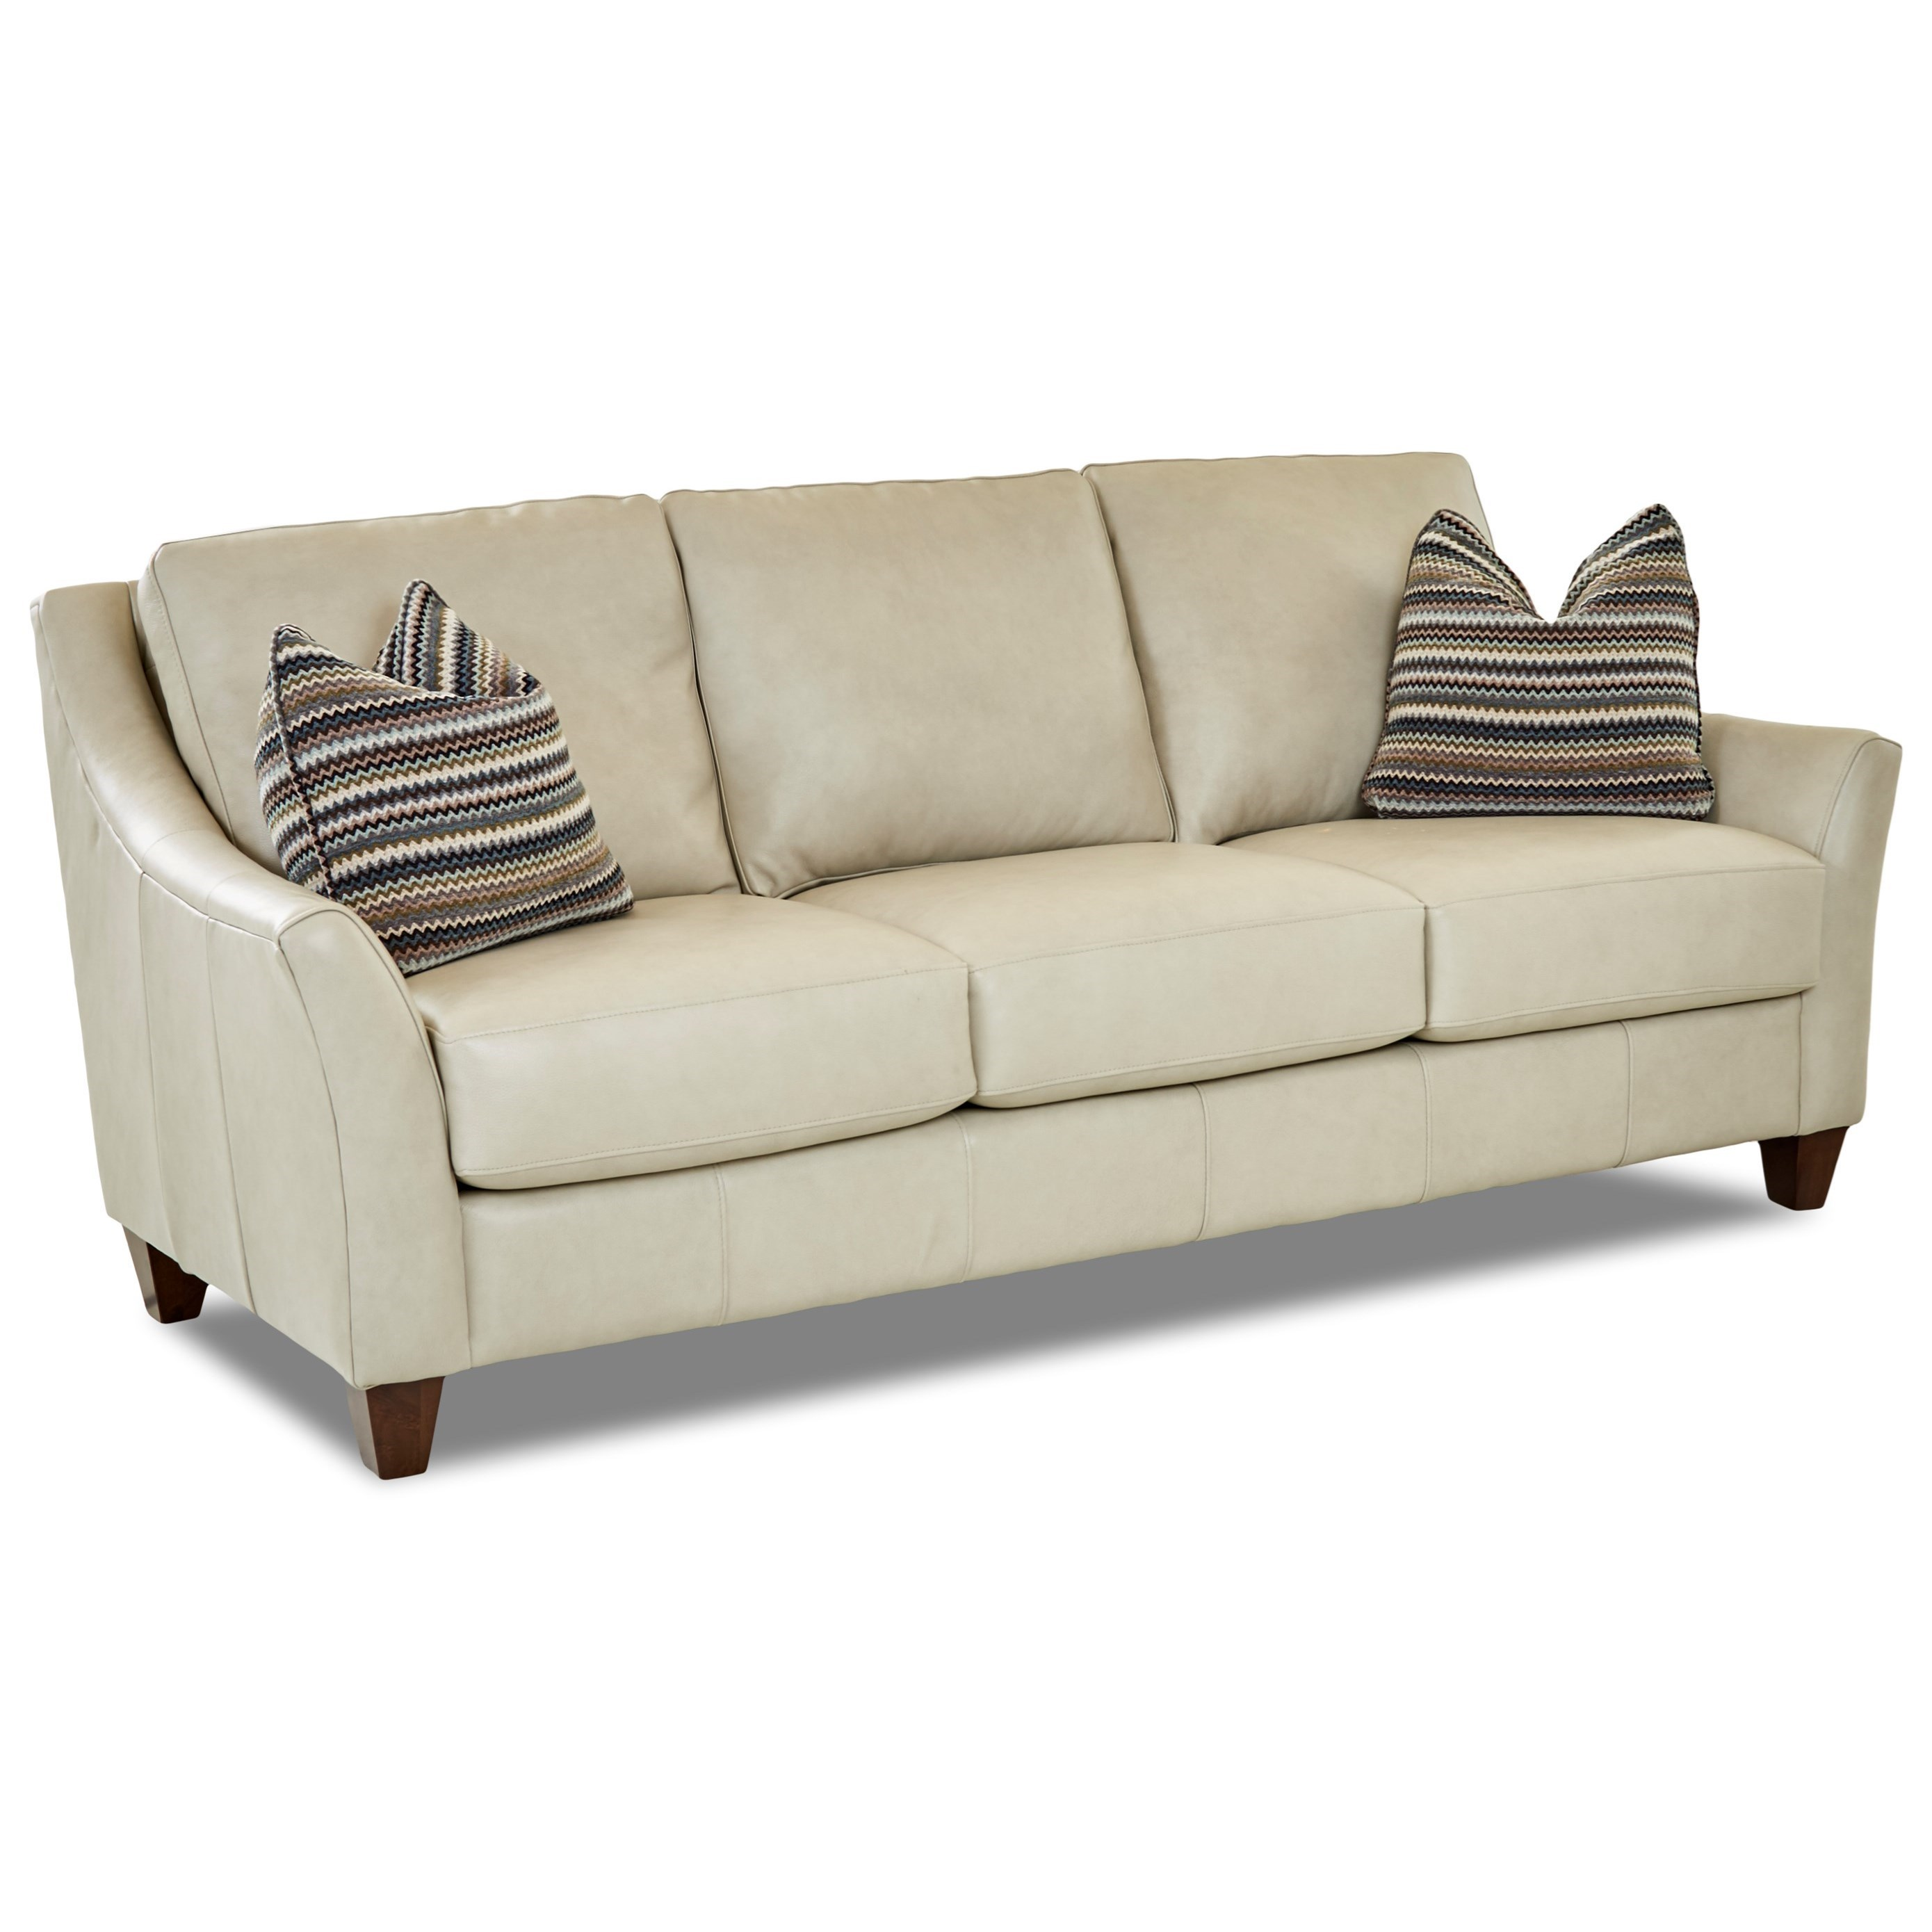 Klaussner Leather Sofa Review: Klaussner Joanna Contemporary Leather Sofa With Toss